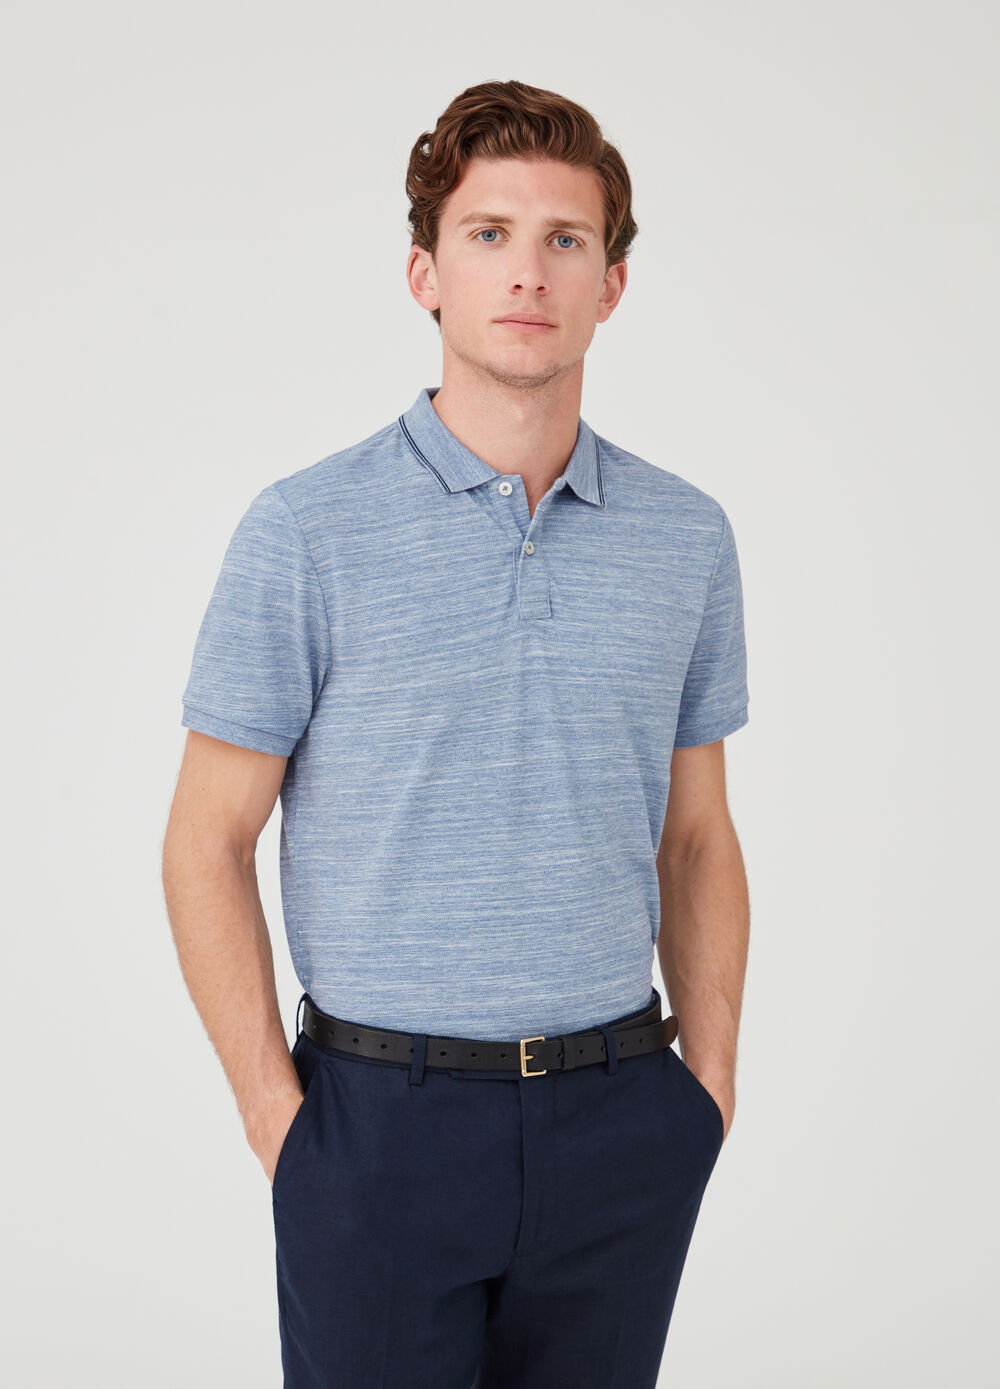 Iridescent-effect piquet polo shirt with ribbing